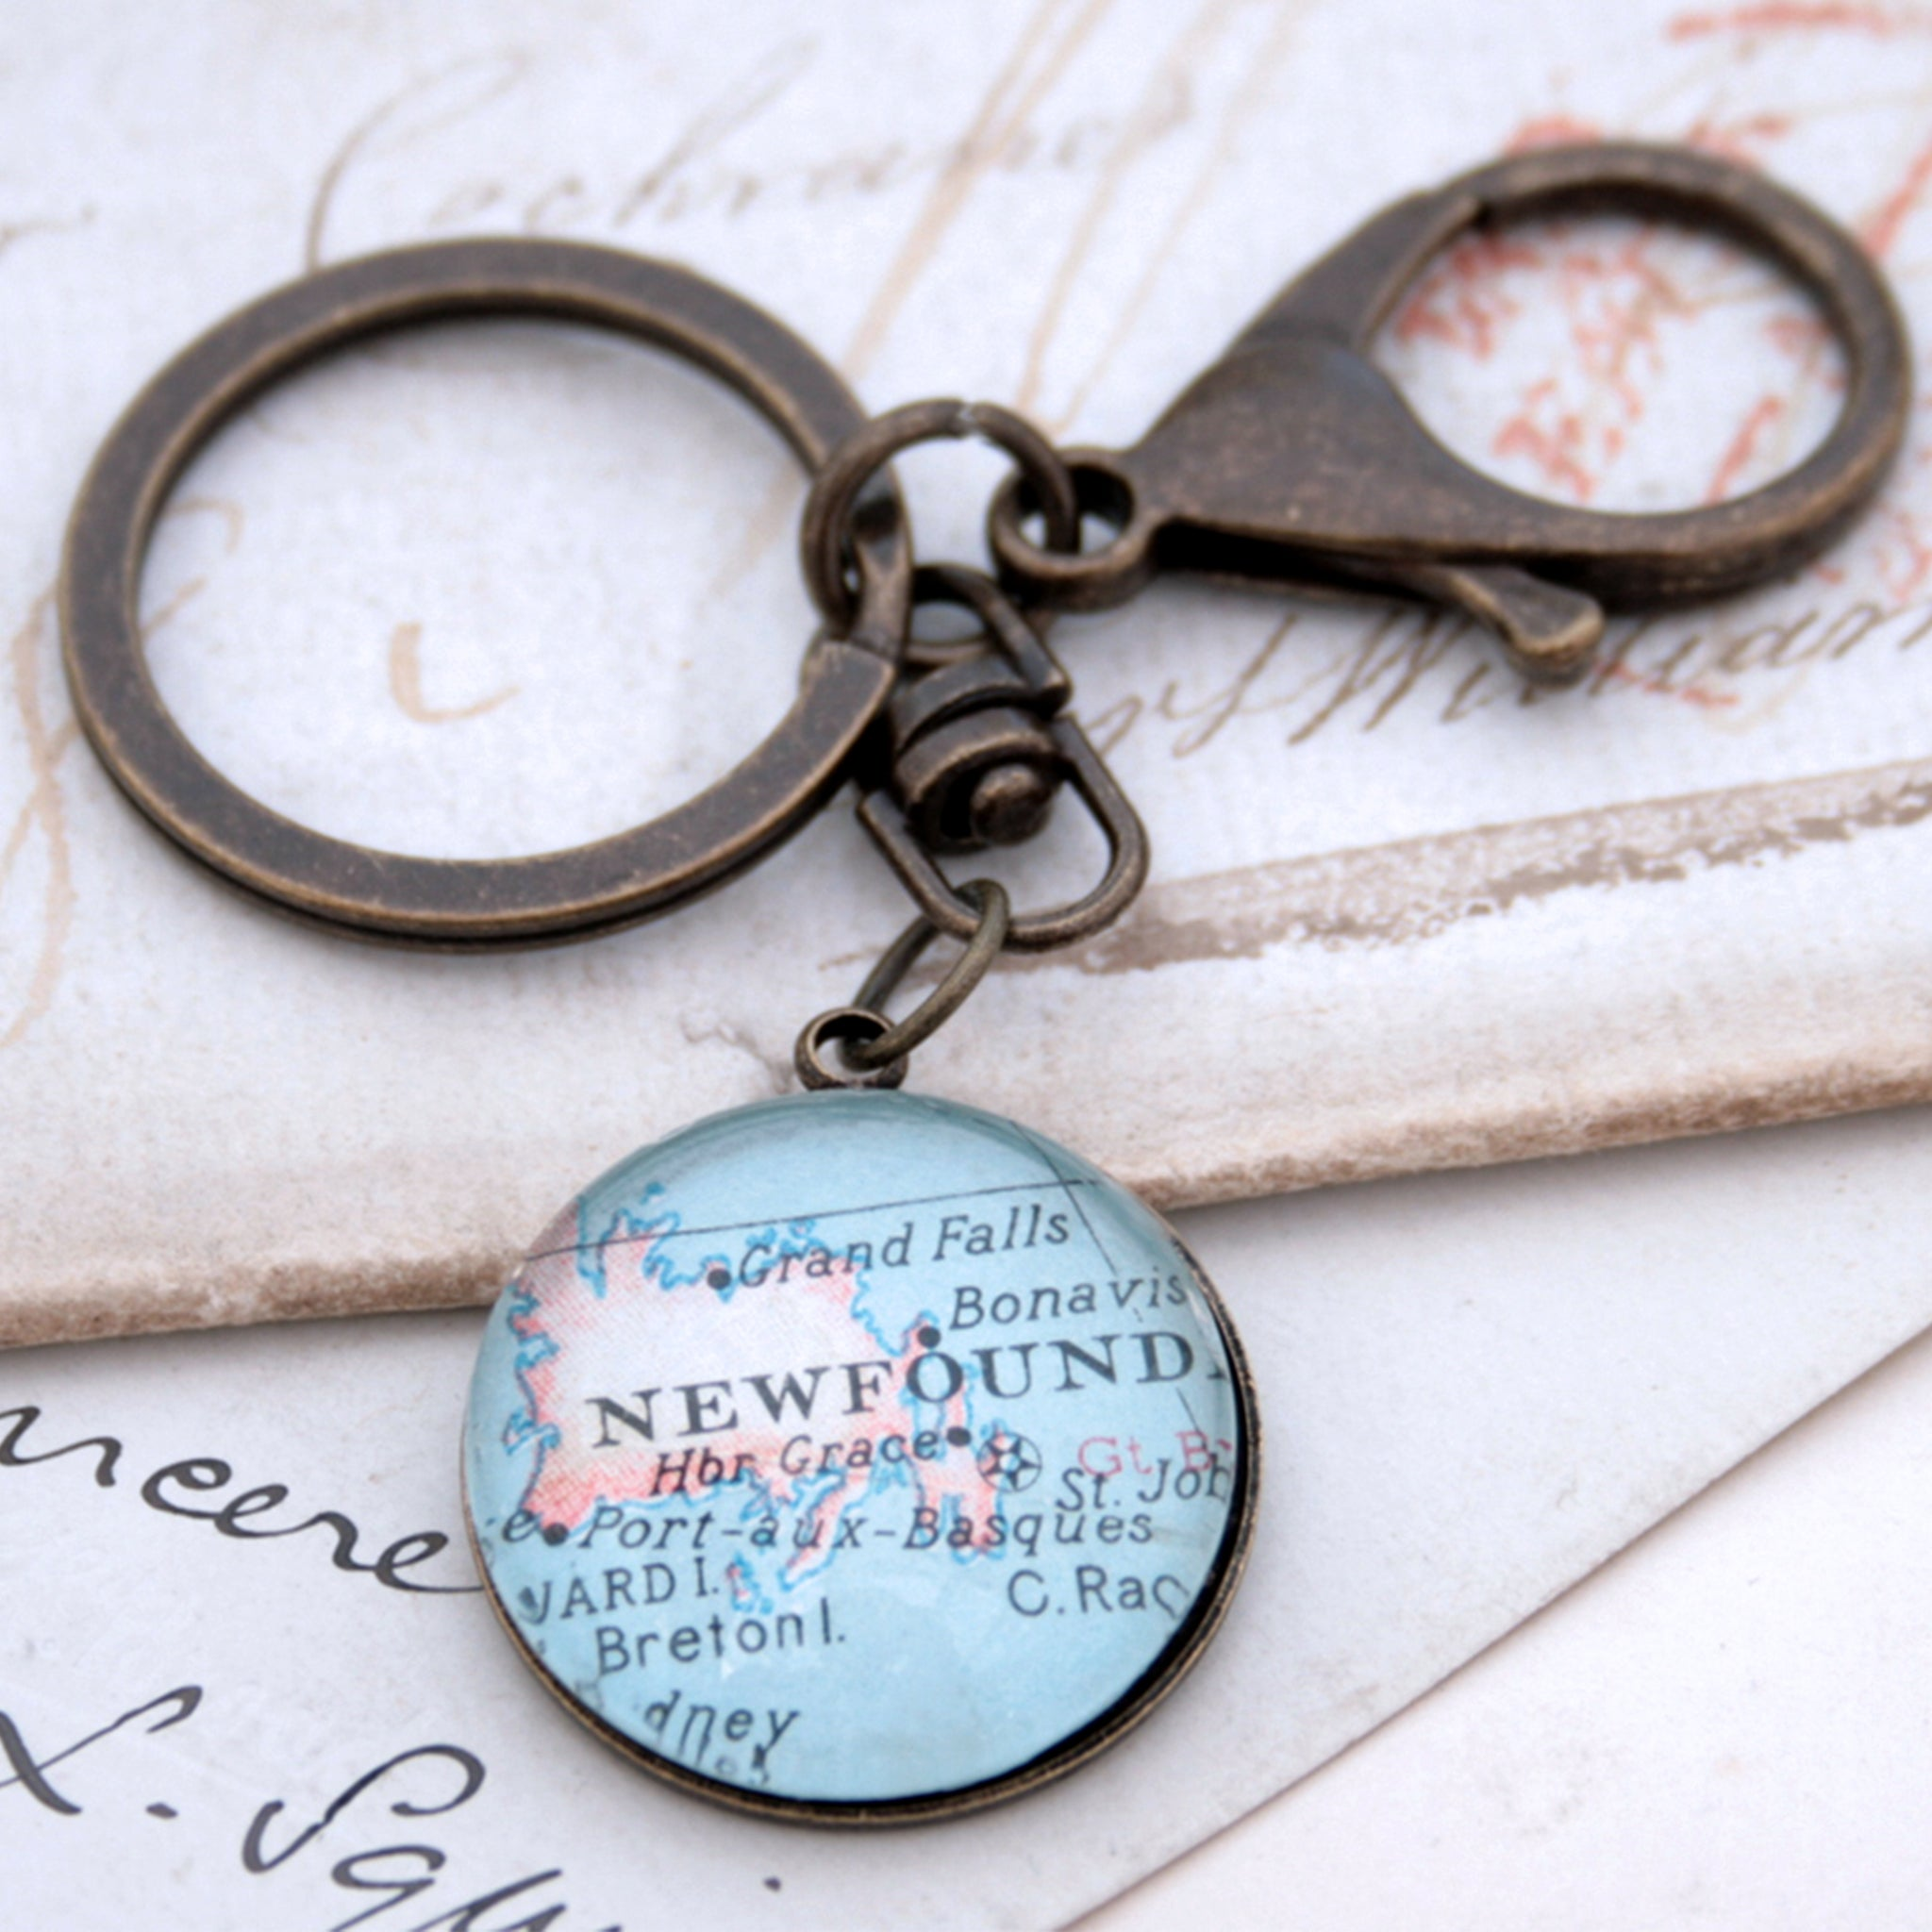 Personalised keyring in antique bronze color featuring map of Newfoundland